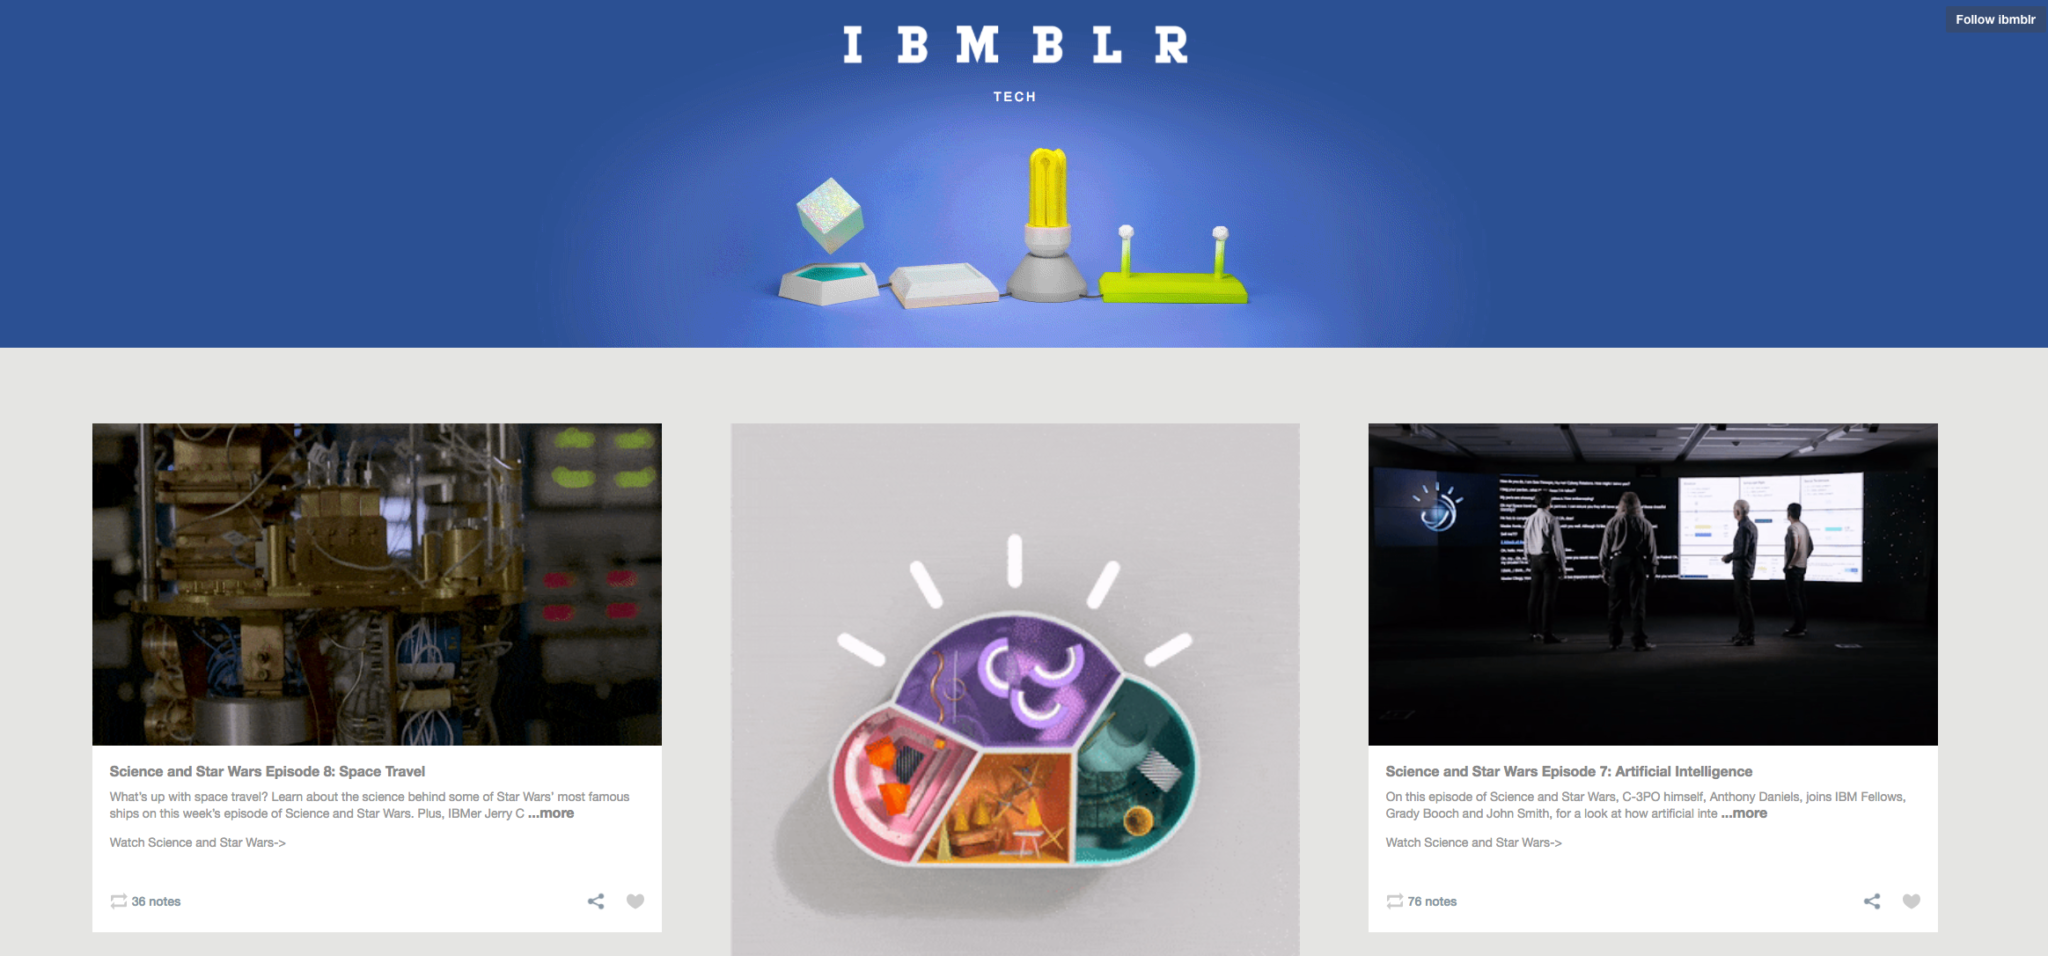 IBMBLR Inspiring Content Marketing